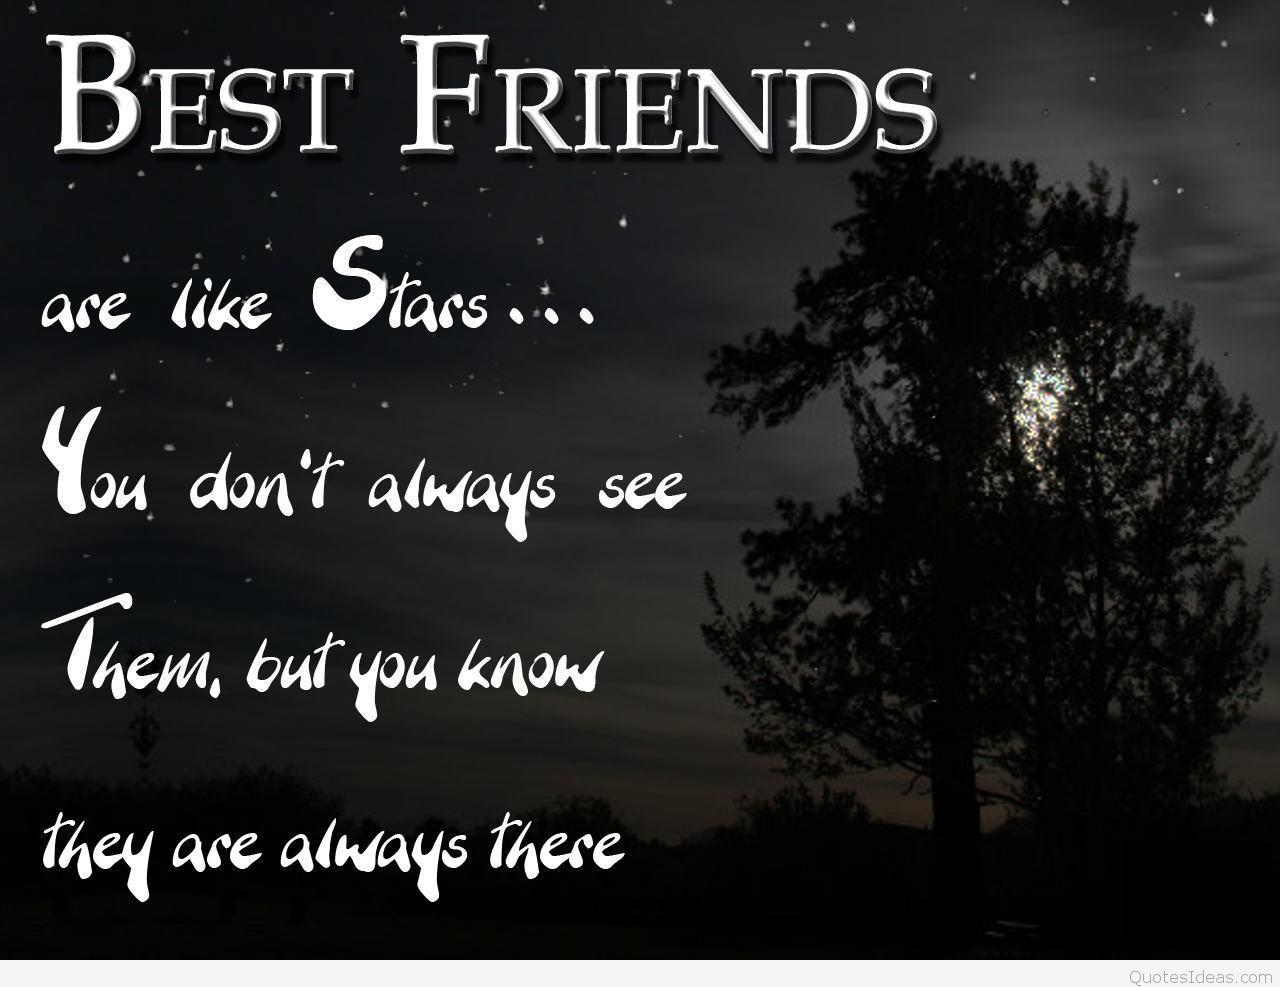 Best Friend Quotes Wallpapers - Wallpaper Cave